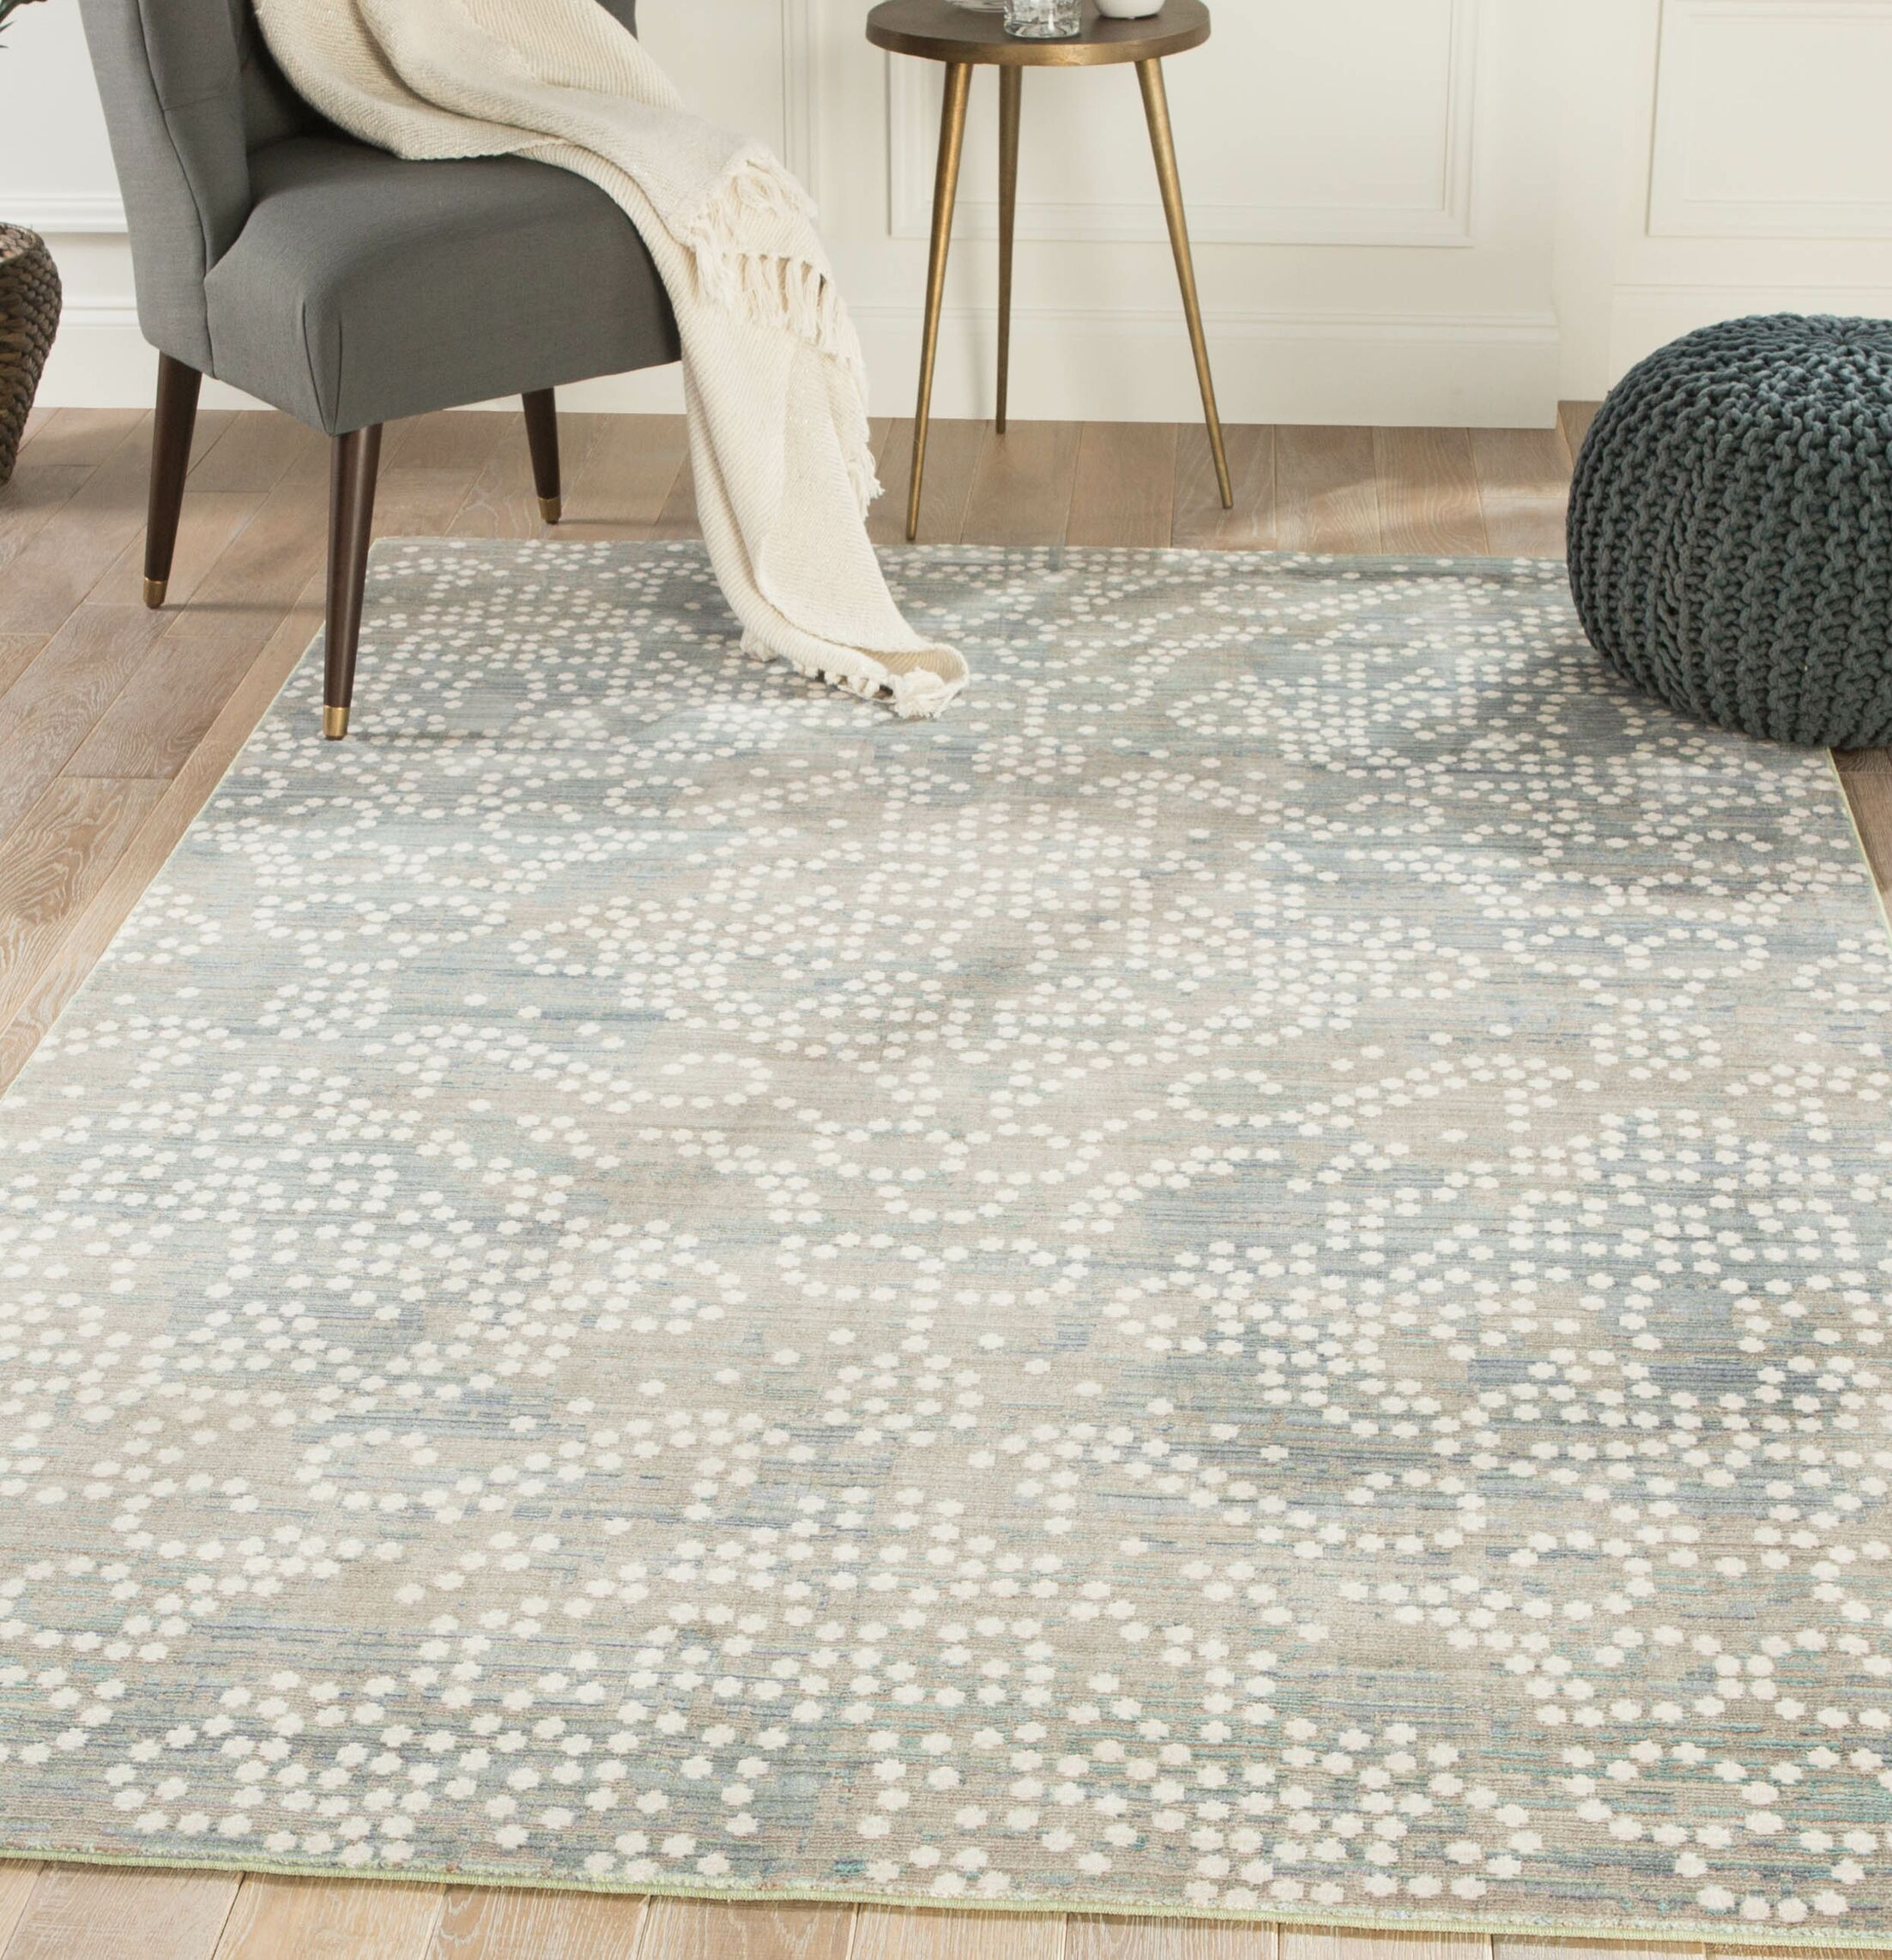 Lilley Damask Gray/White Area Rug Rug Size: Rectangle 8' x 10'